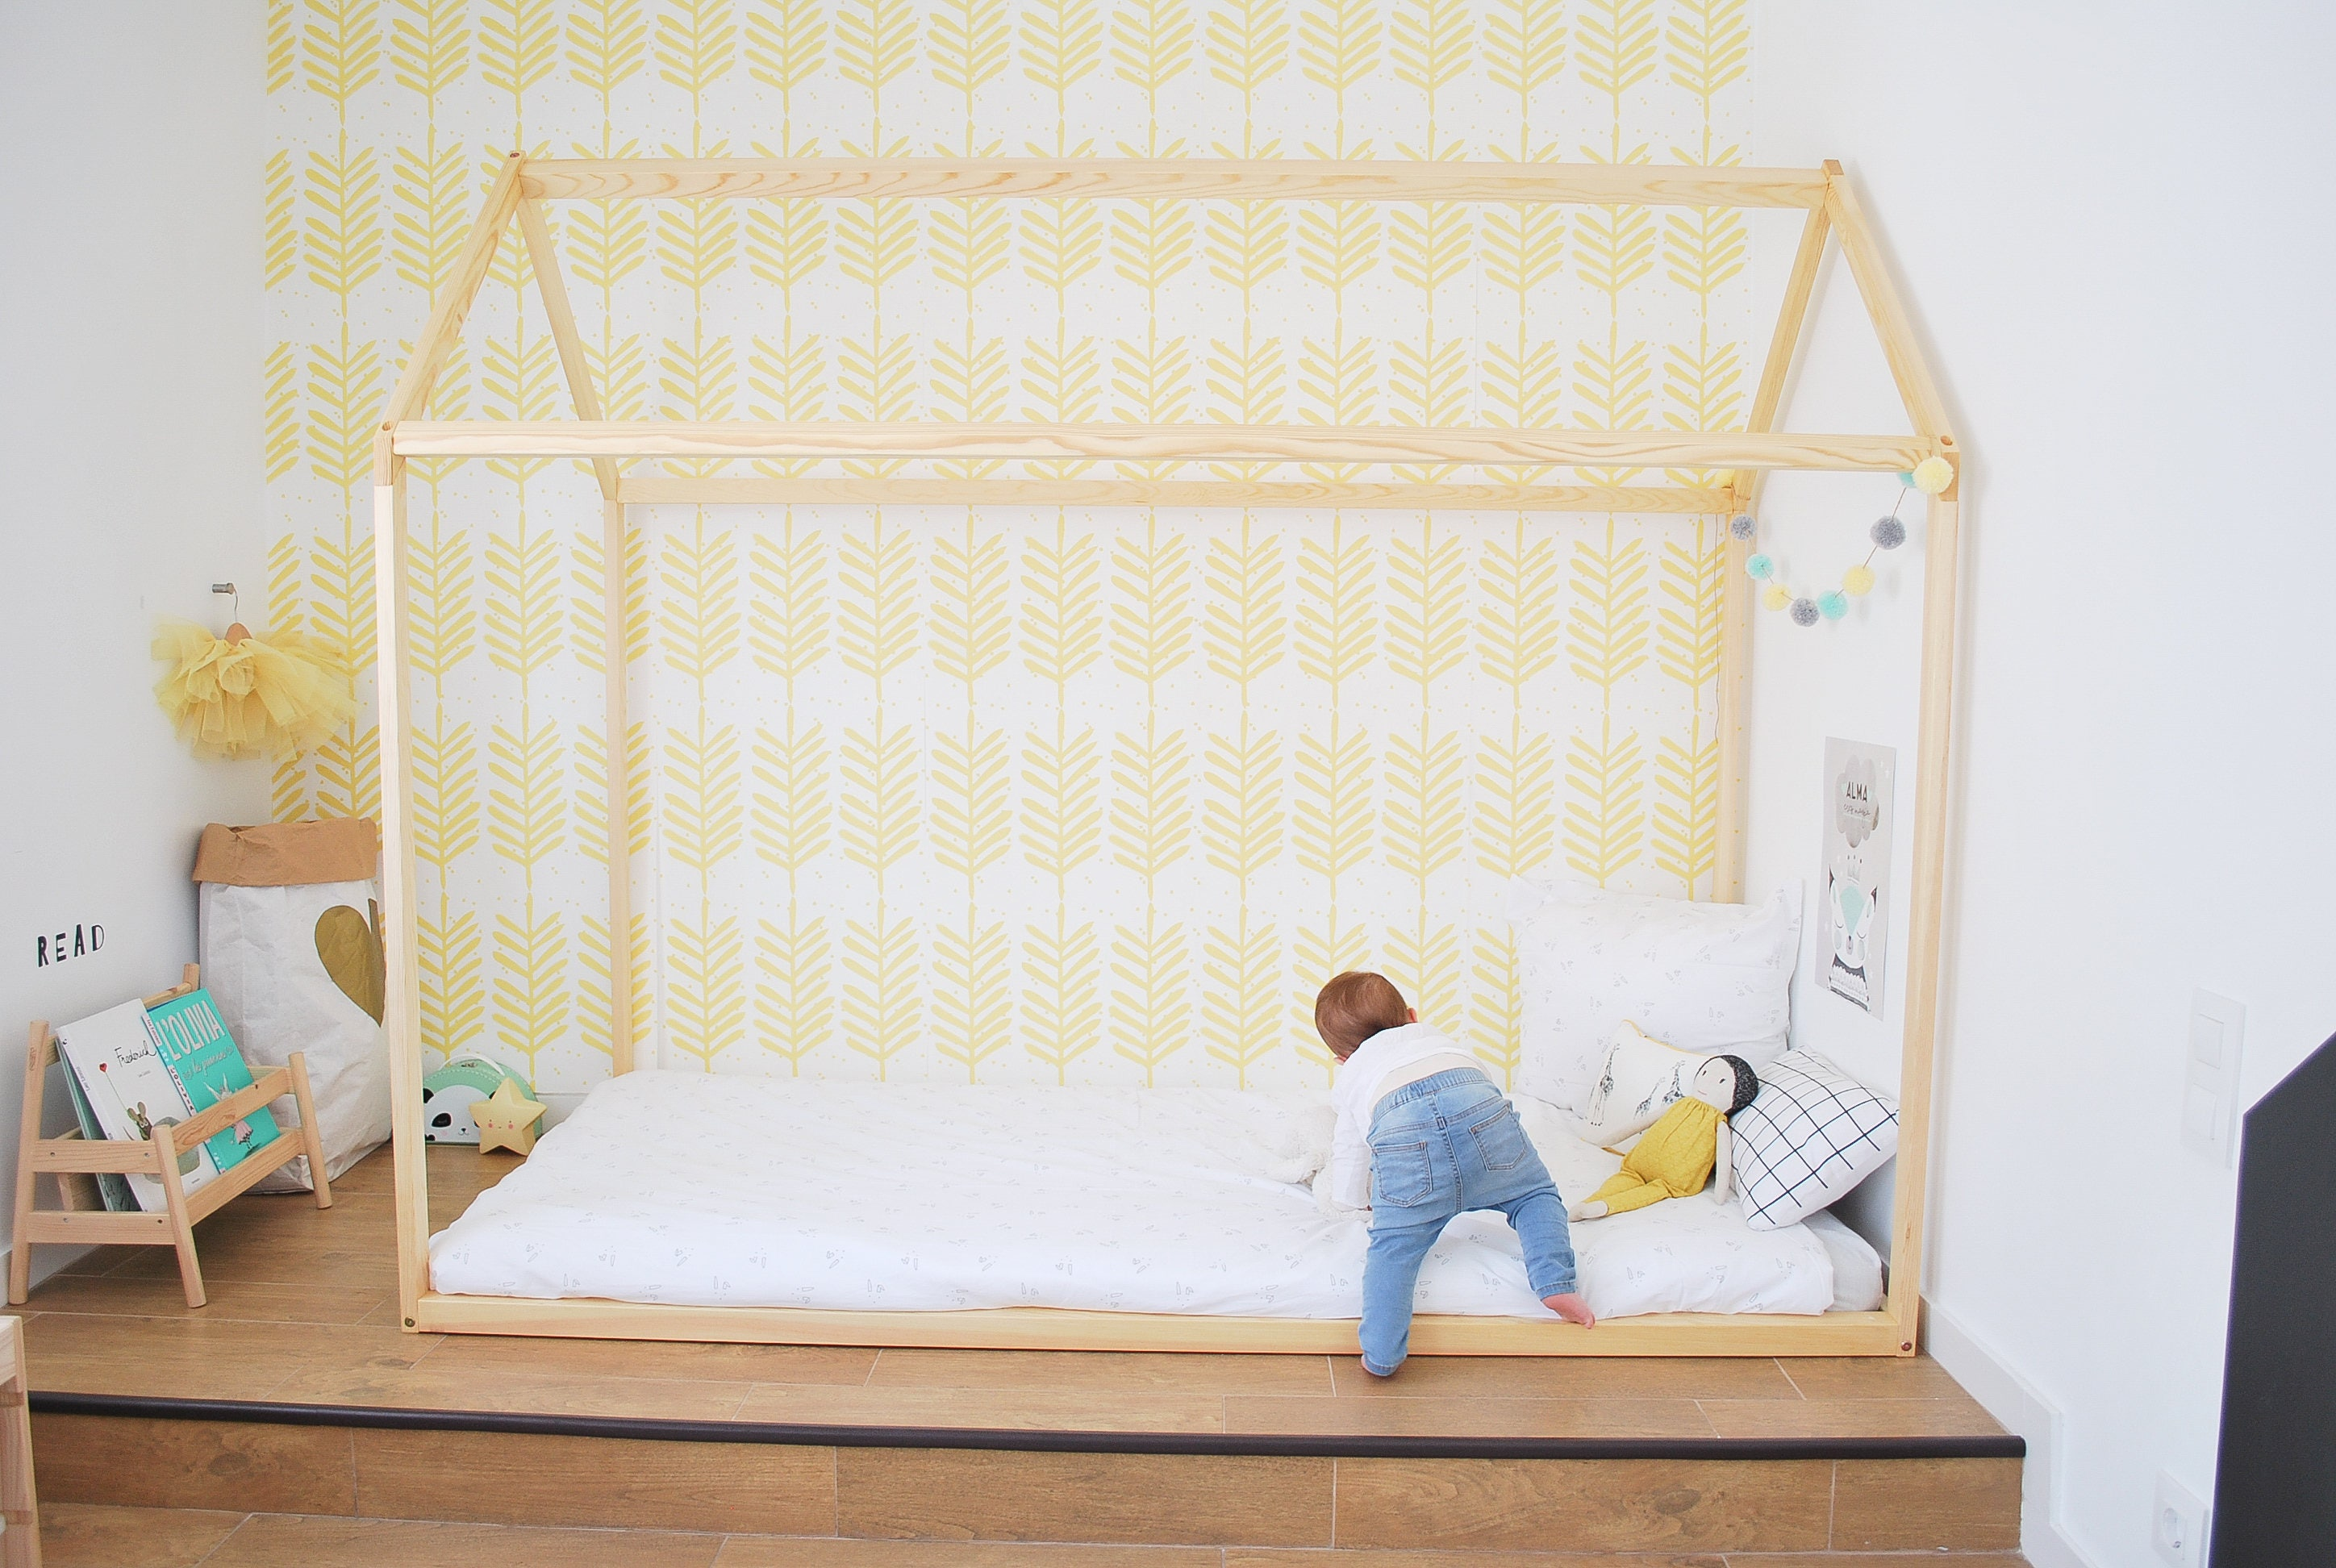 X Cm Lit Cabane Toddler Bed Play House Bed Frame Etsy - Lit cabane 140x190